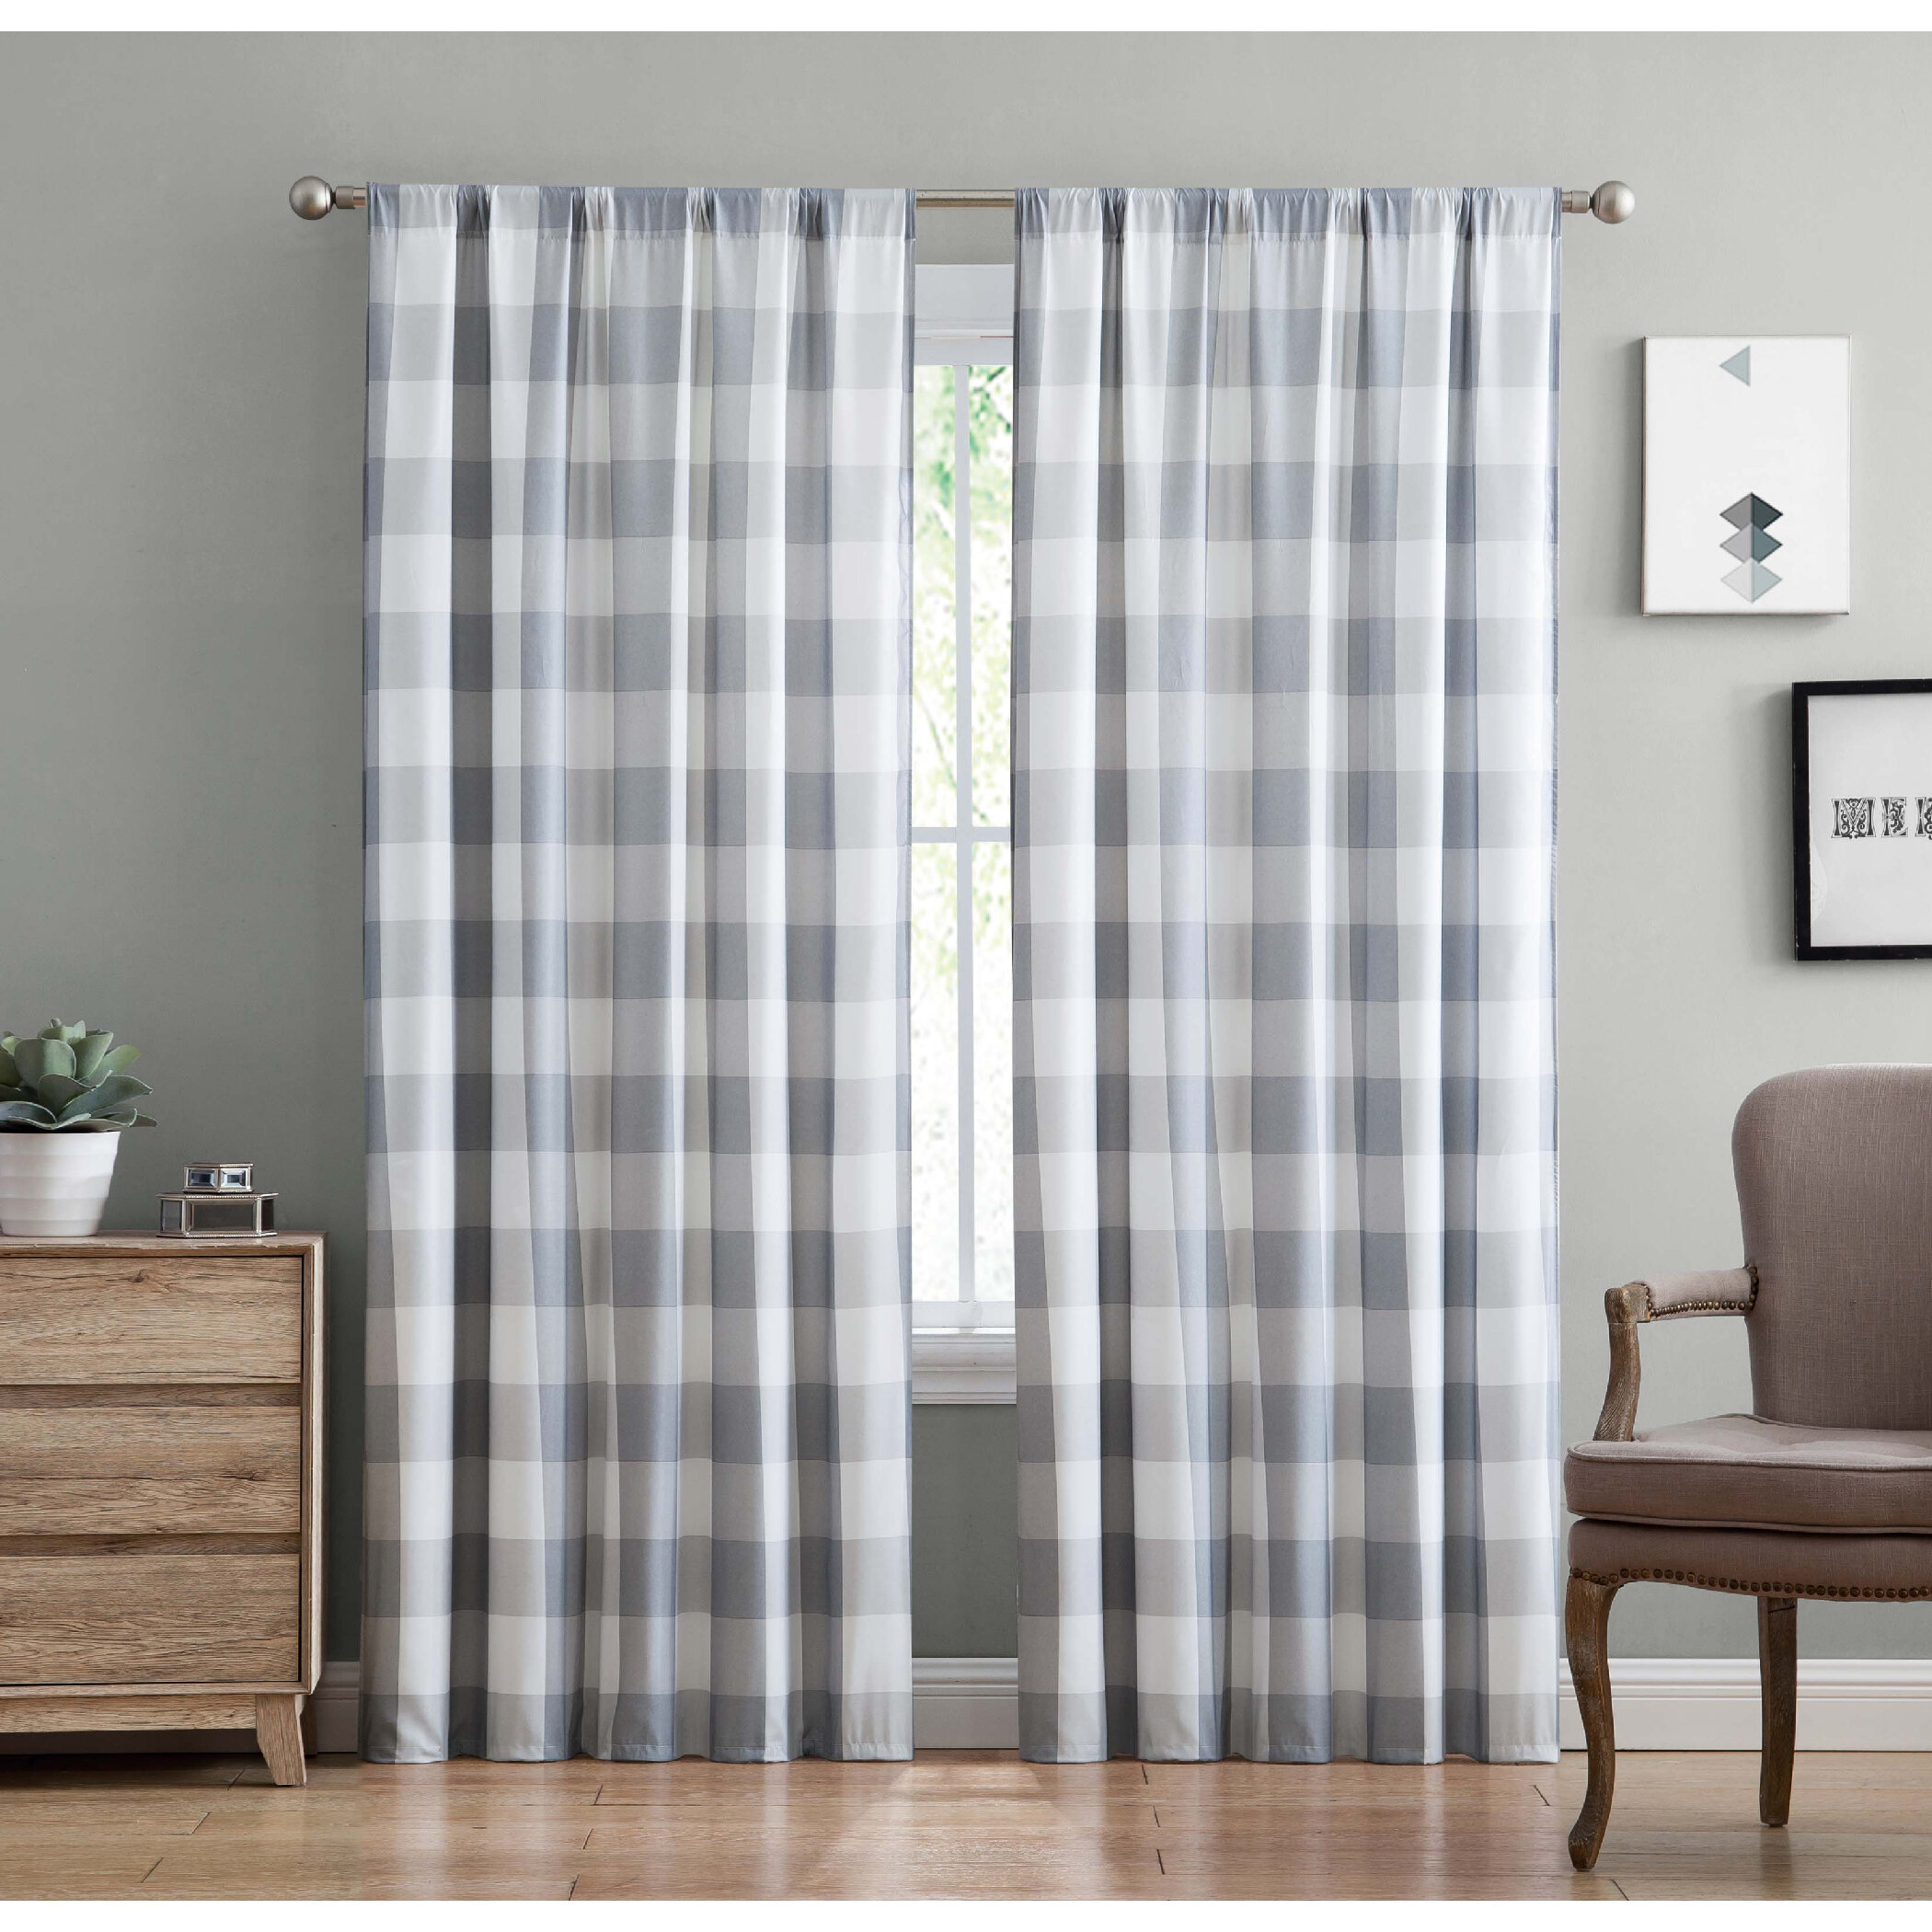 Truly Soft Buffalo Plaid Everyday Semi Sheer Rod Pocket Inside Classic Navy Cotton Blend Buffalo Check Kitchen Curtain Sets (View 20 of 20)